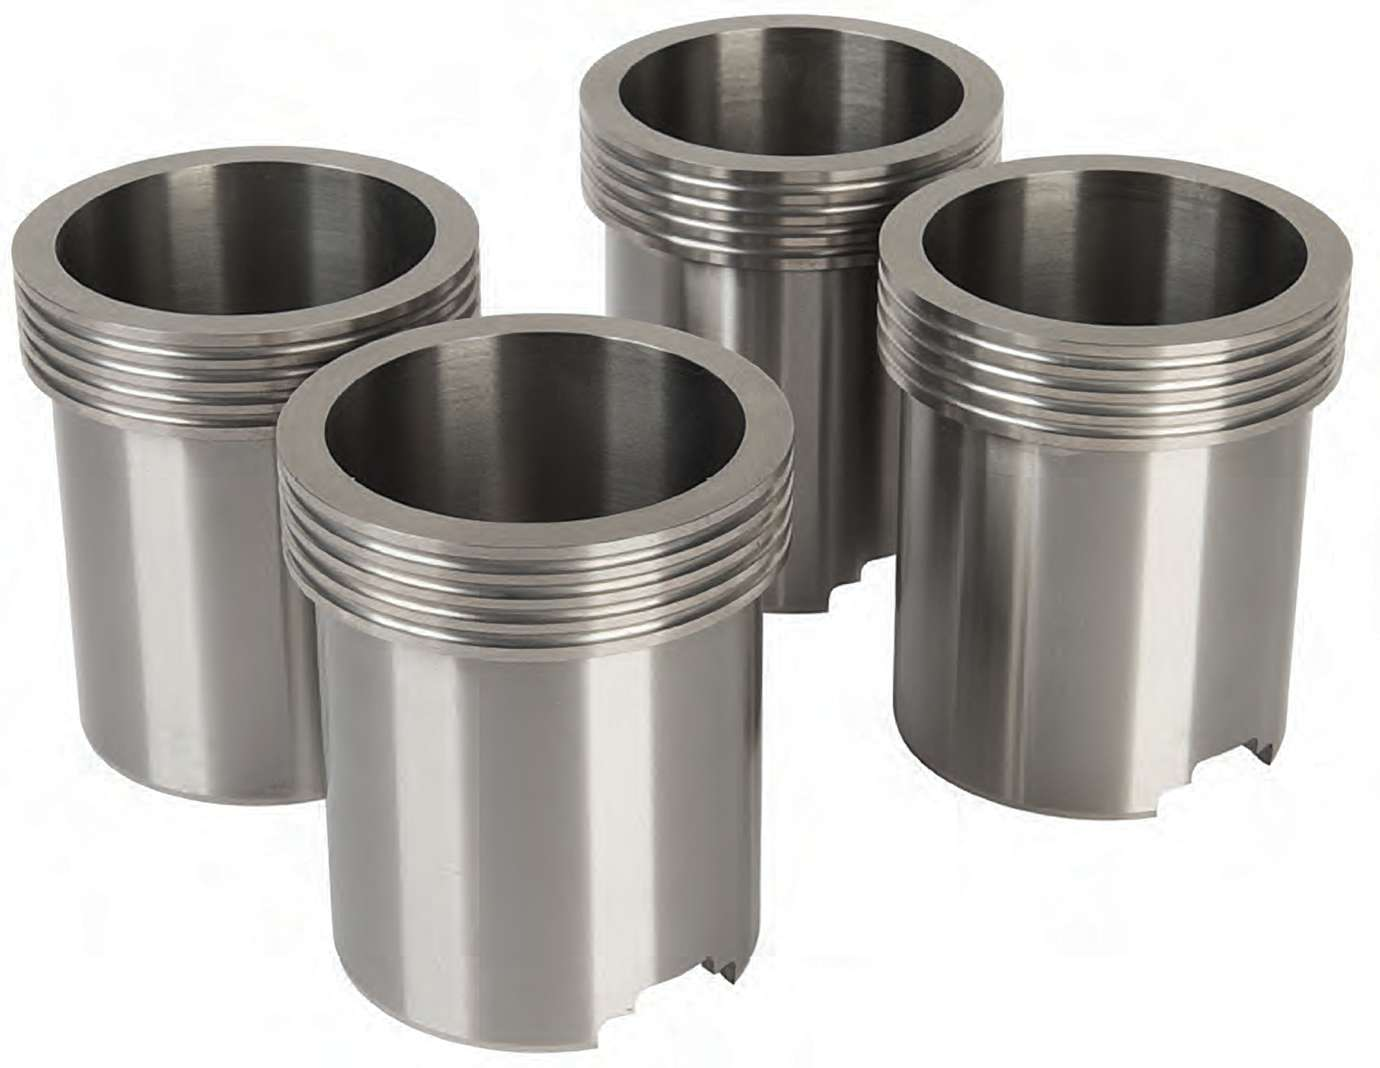 L.A.SLEEVE amphibious cylinder liners